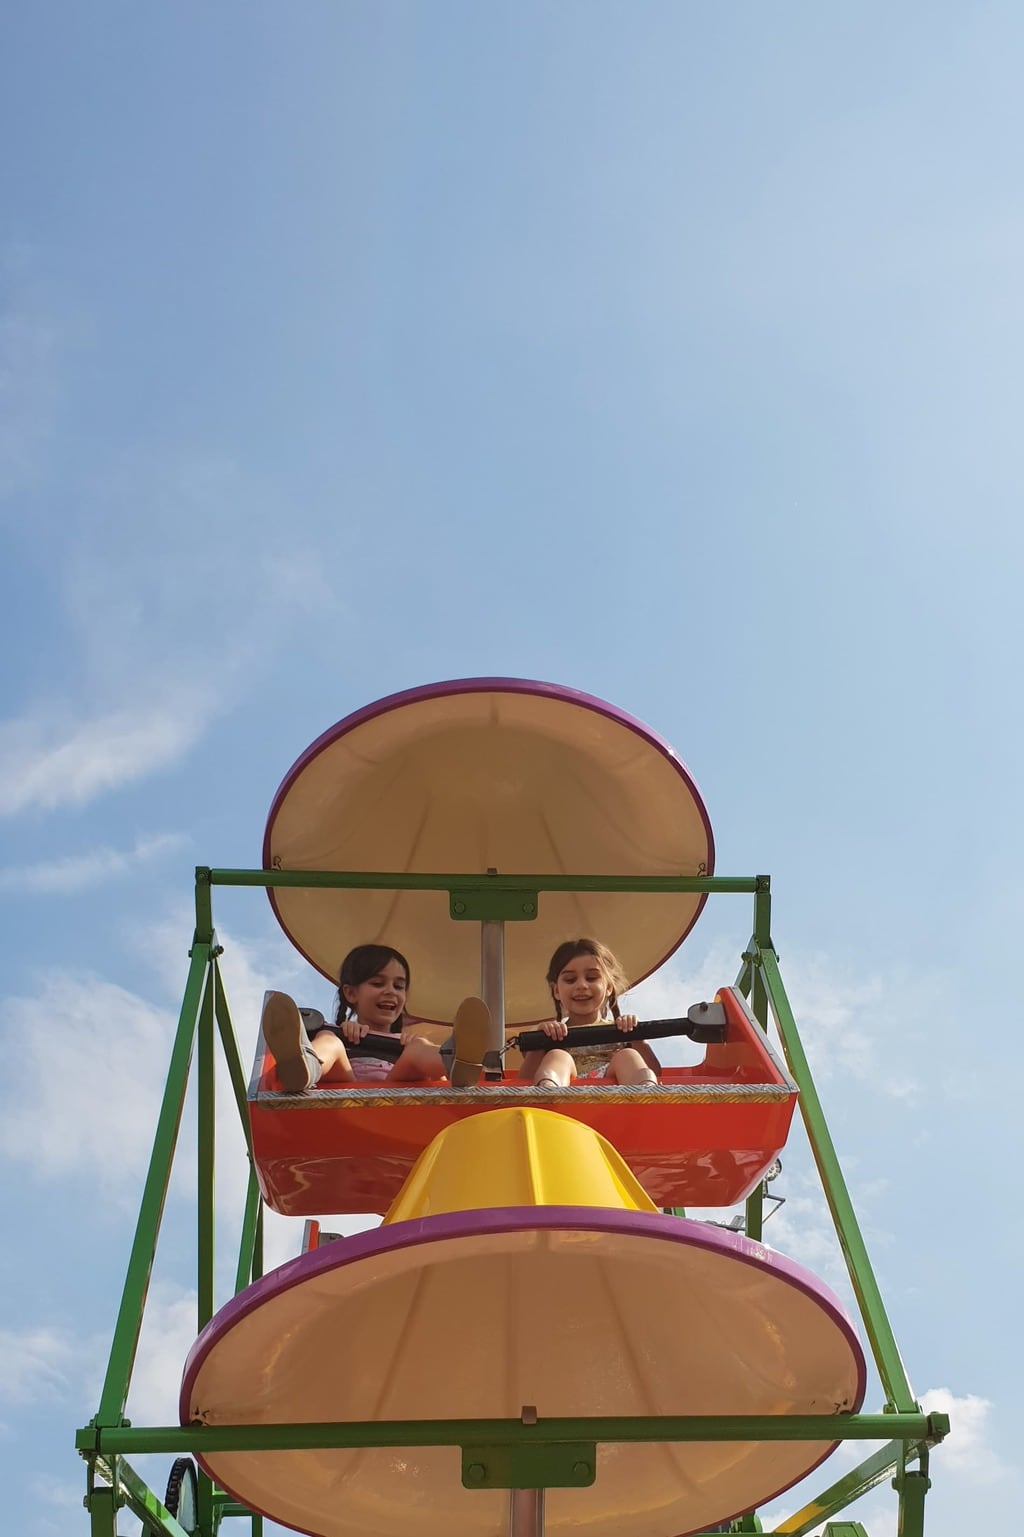 Hawkesbury Show rides and sideshow alley games